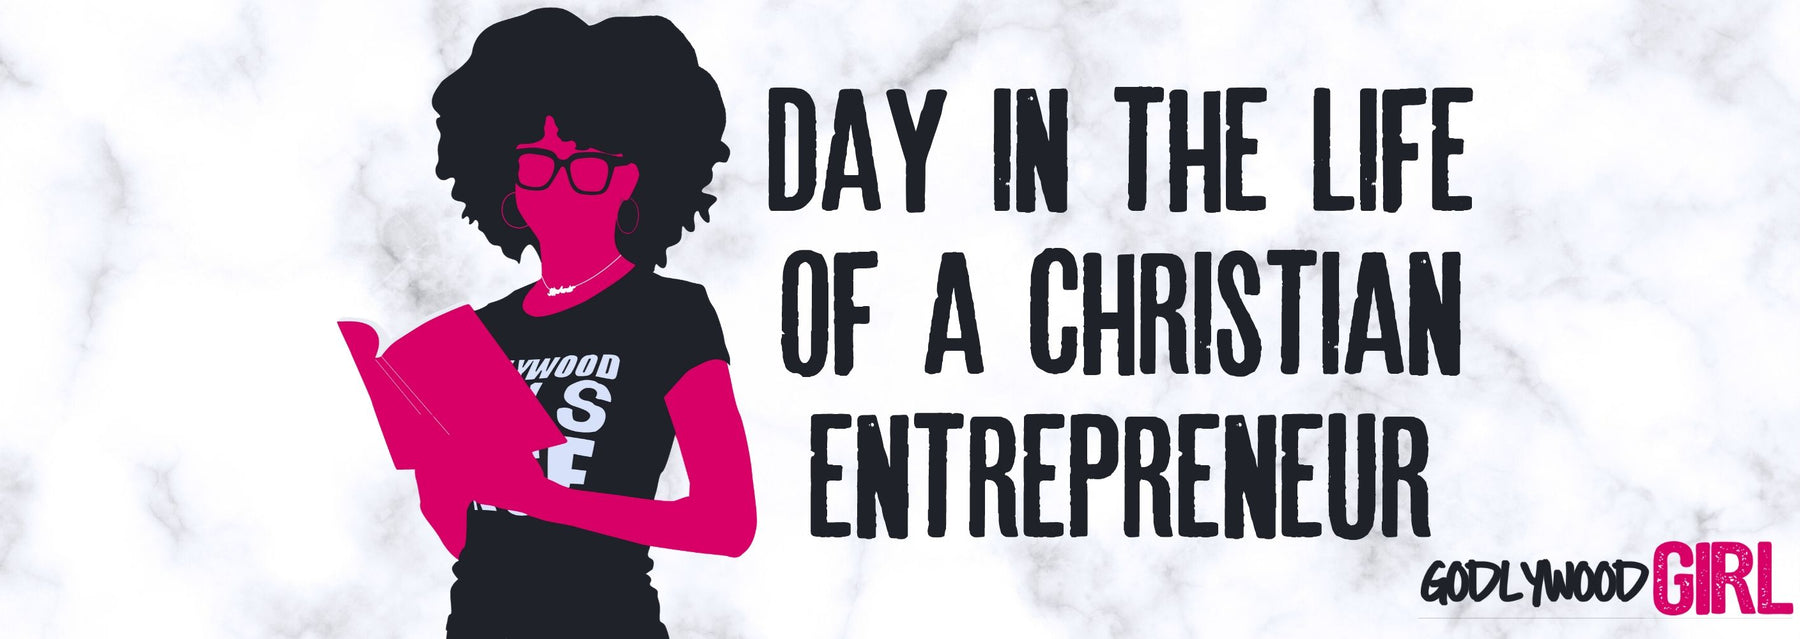 Day In The Life Of A Christian Entrepreneur Ep.39 | Webinar, Movies And Panic Attacks